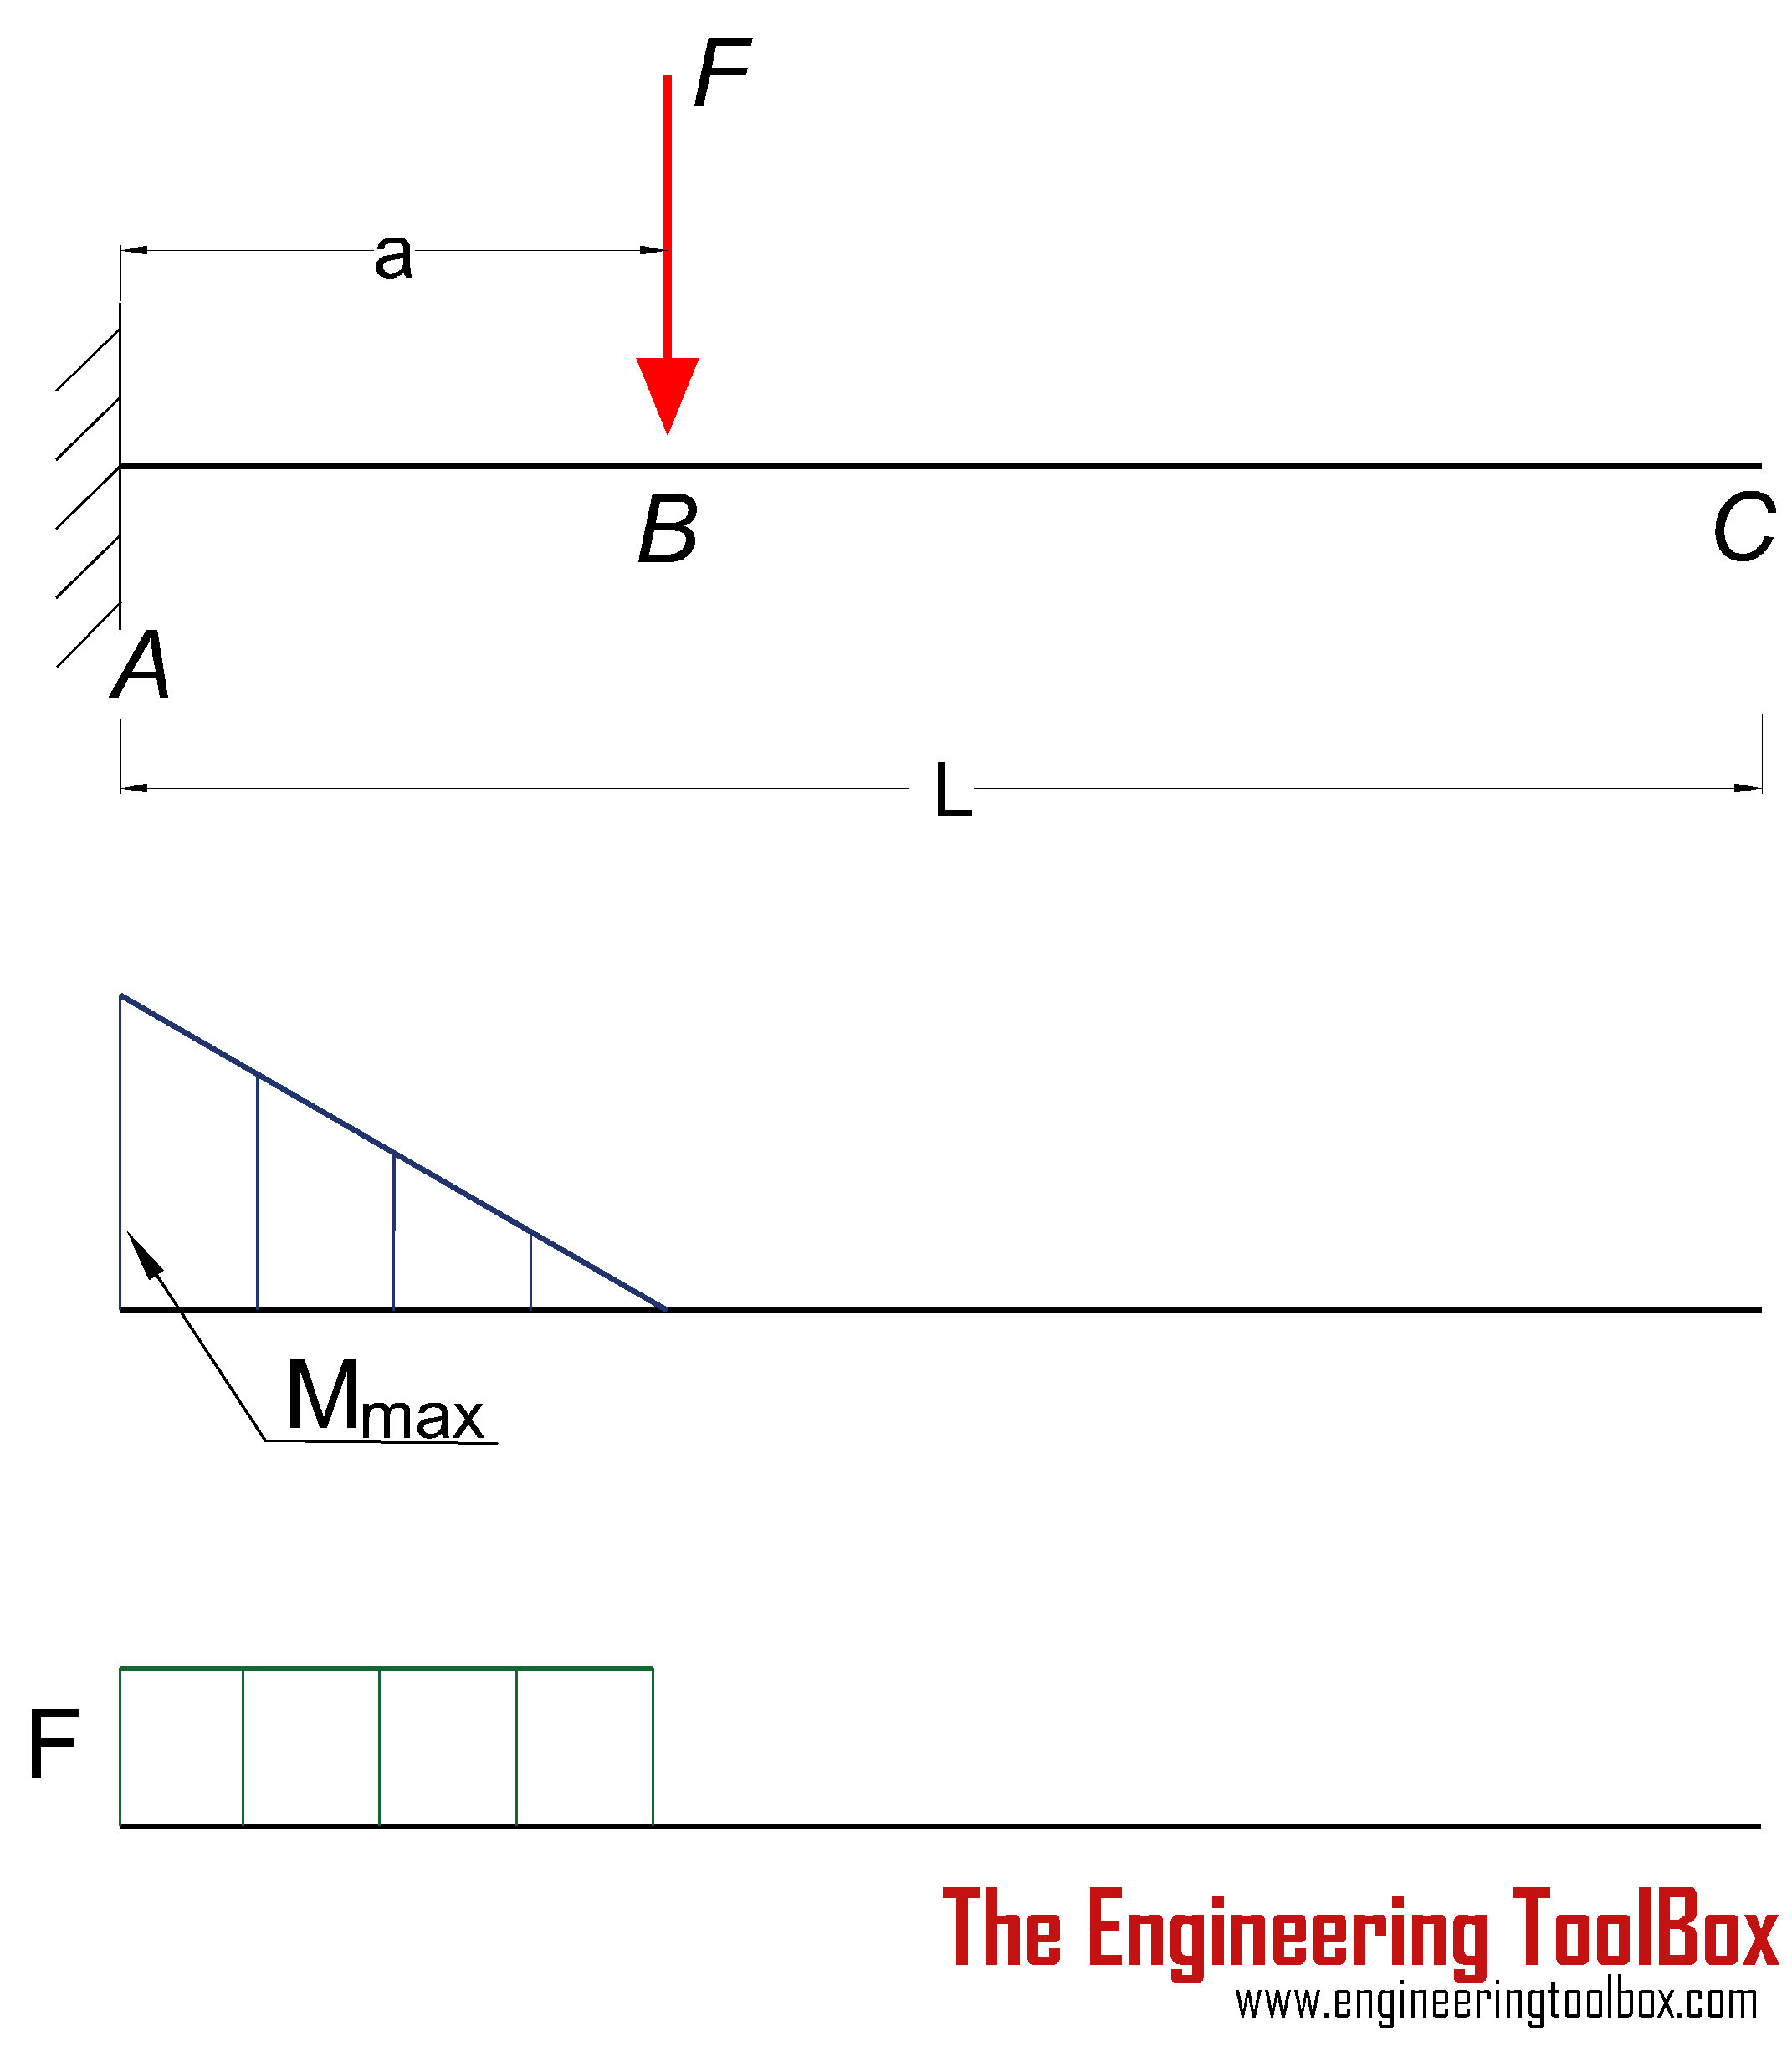 Cantilever beam - single load - deflection